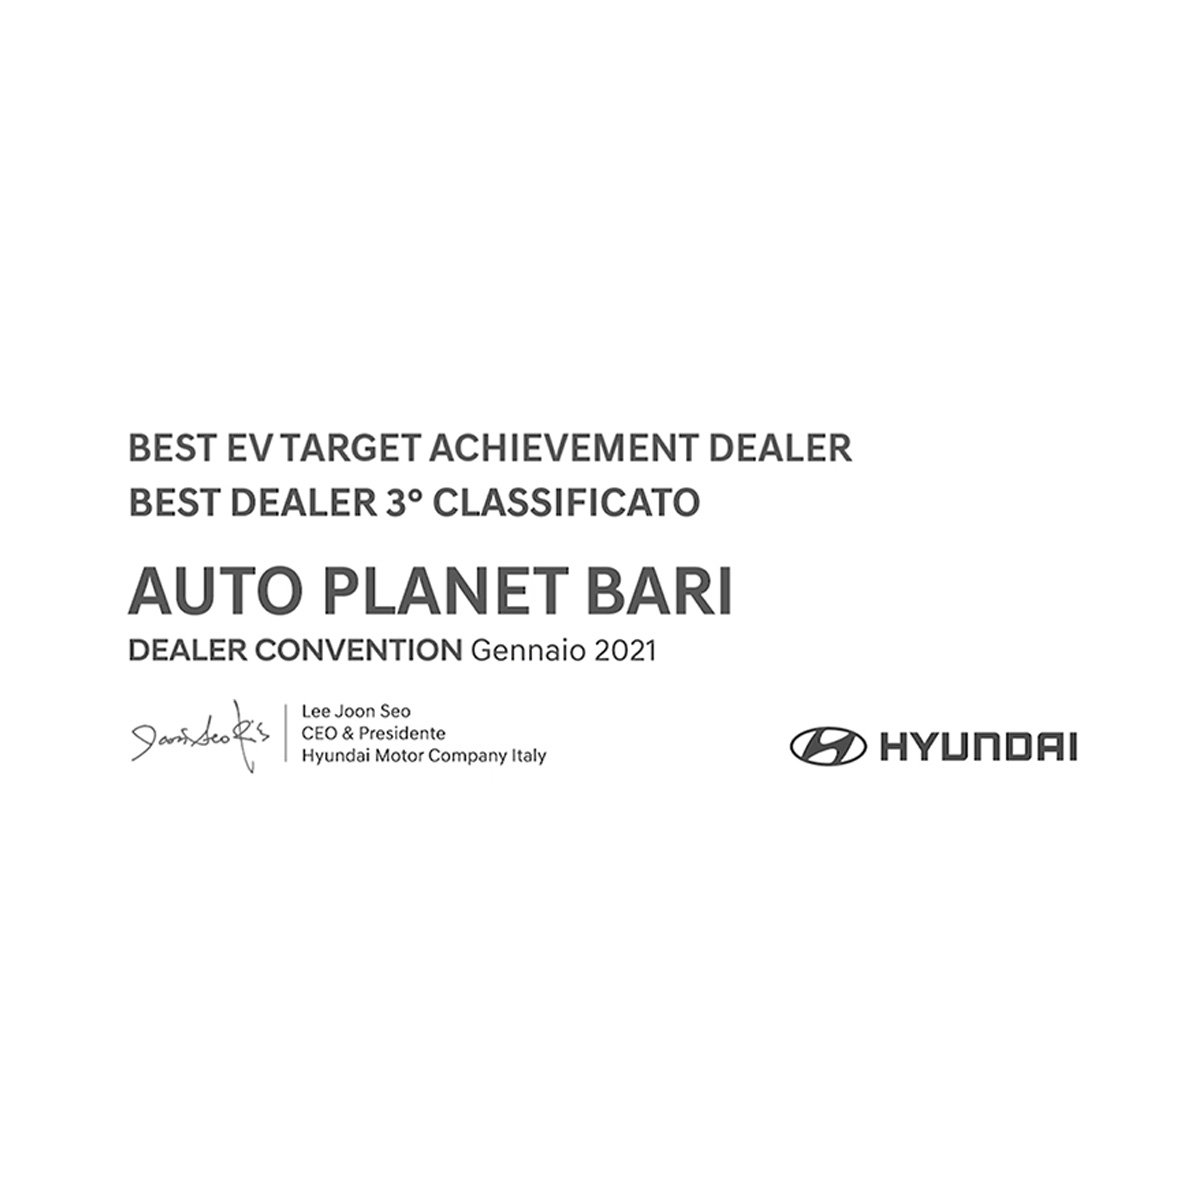 HYUNDAI DEALER CONVENTION GENNAIO 2021 - PREMIO AUTO PLANET BARI